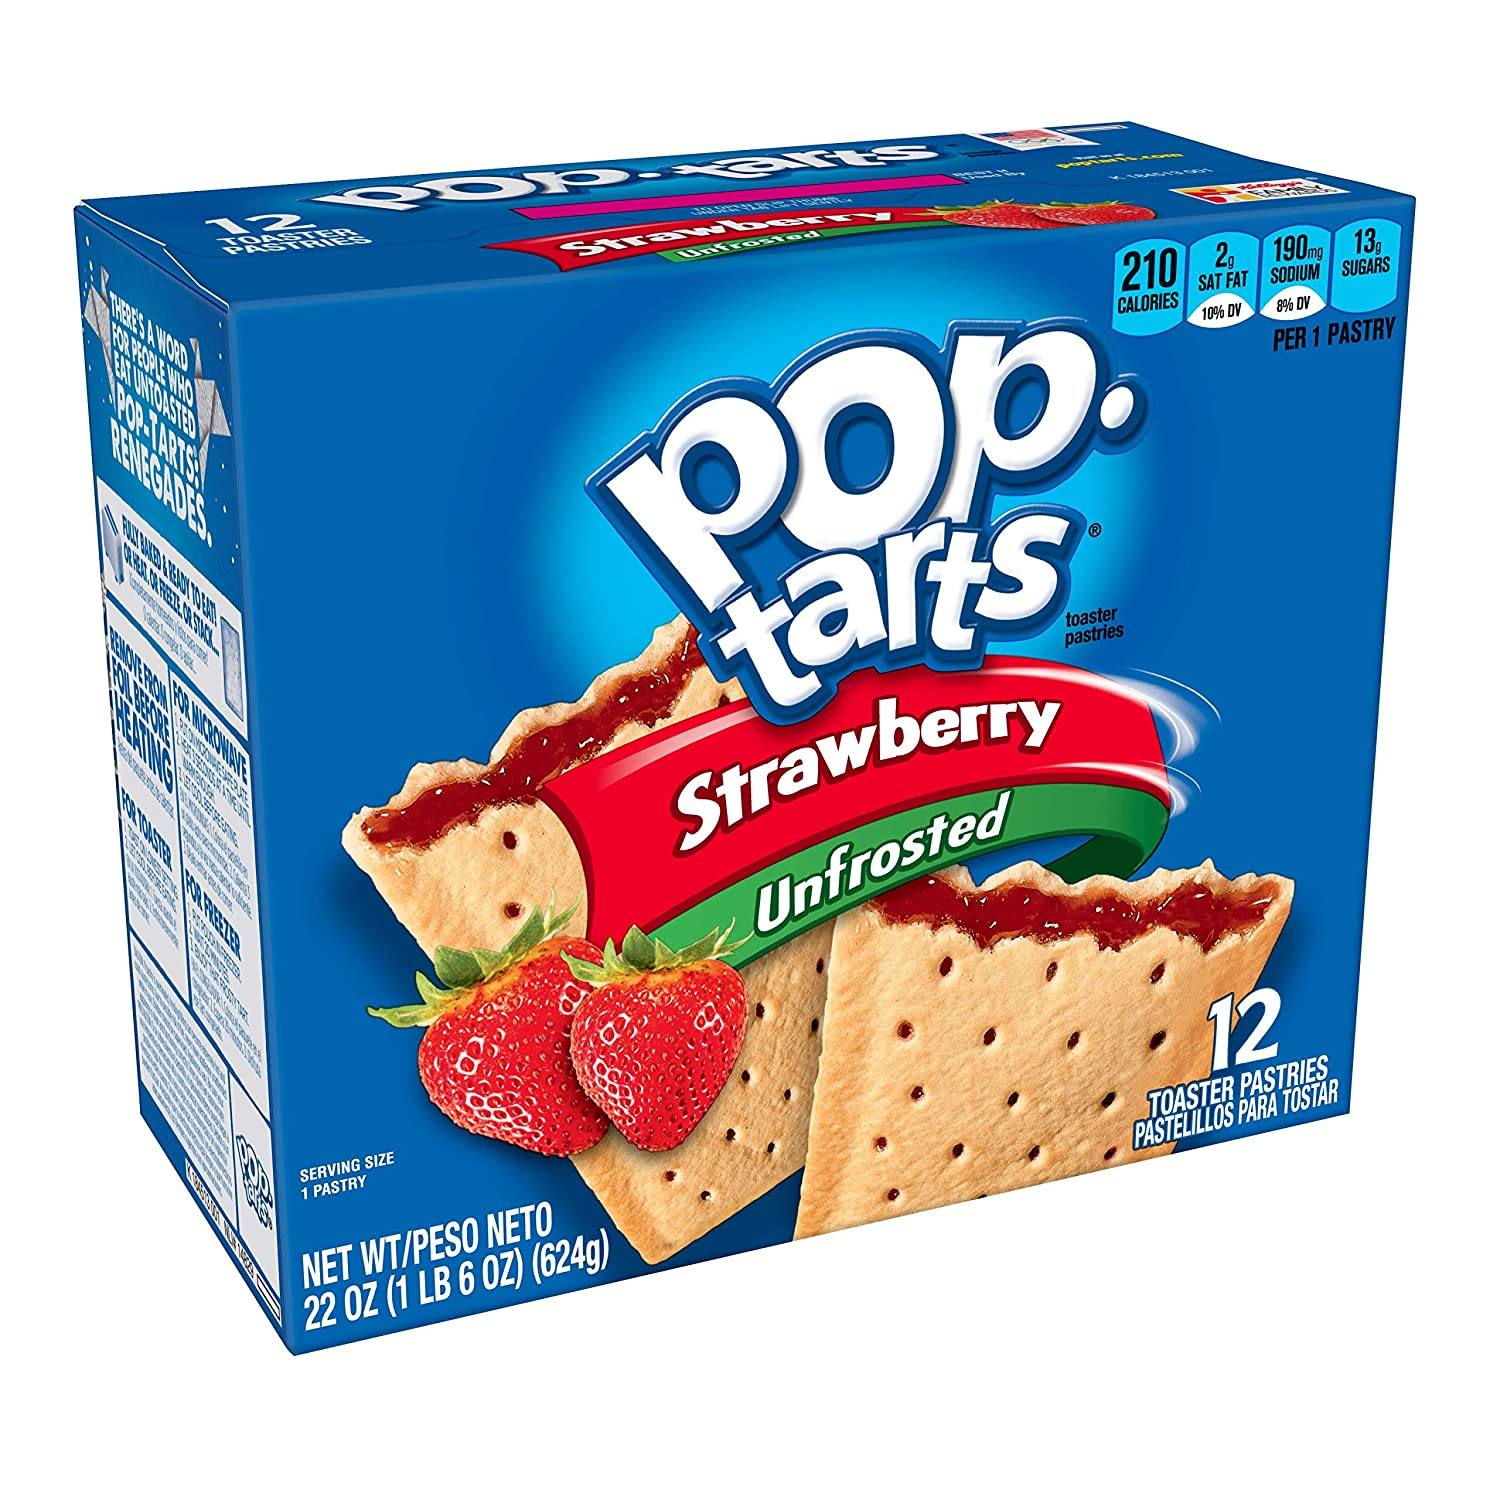 (Discontinued by Manufacturer)Pop-Tarts BreakfastToaster Pastries, Unfrosted Strawberry Flavored, 22 oz - 12 Count (Packaging May Vary)